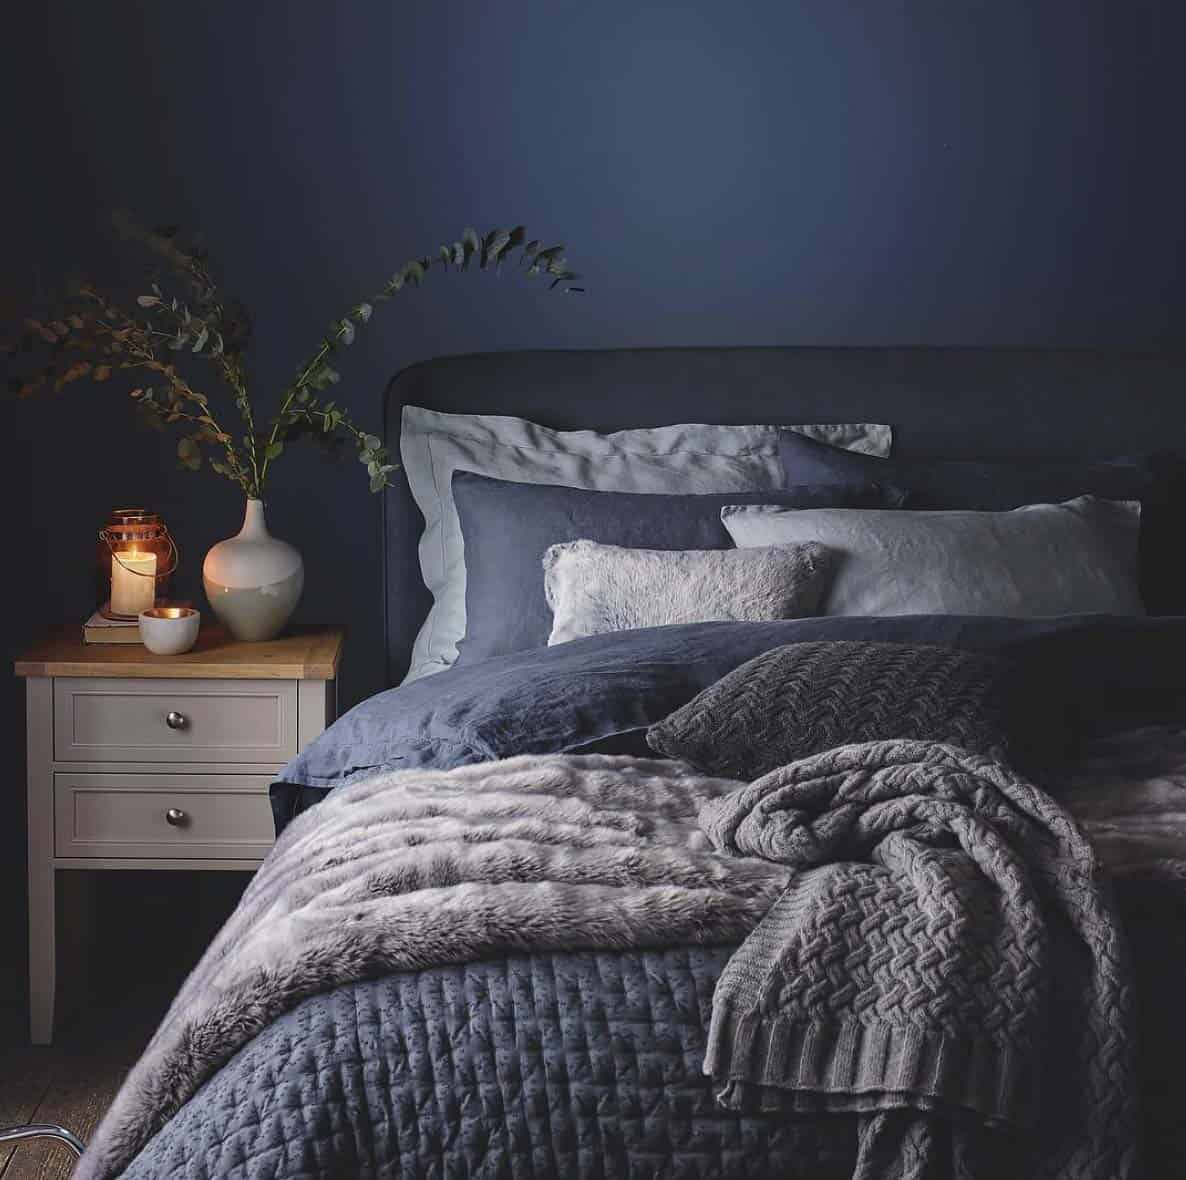 33 ultra cozy bedroom decorating ideas for winter warmth for Decorating tips